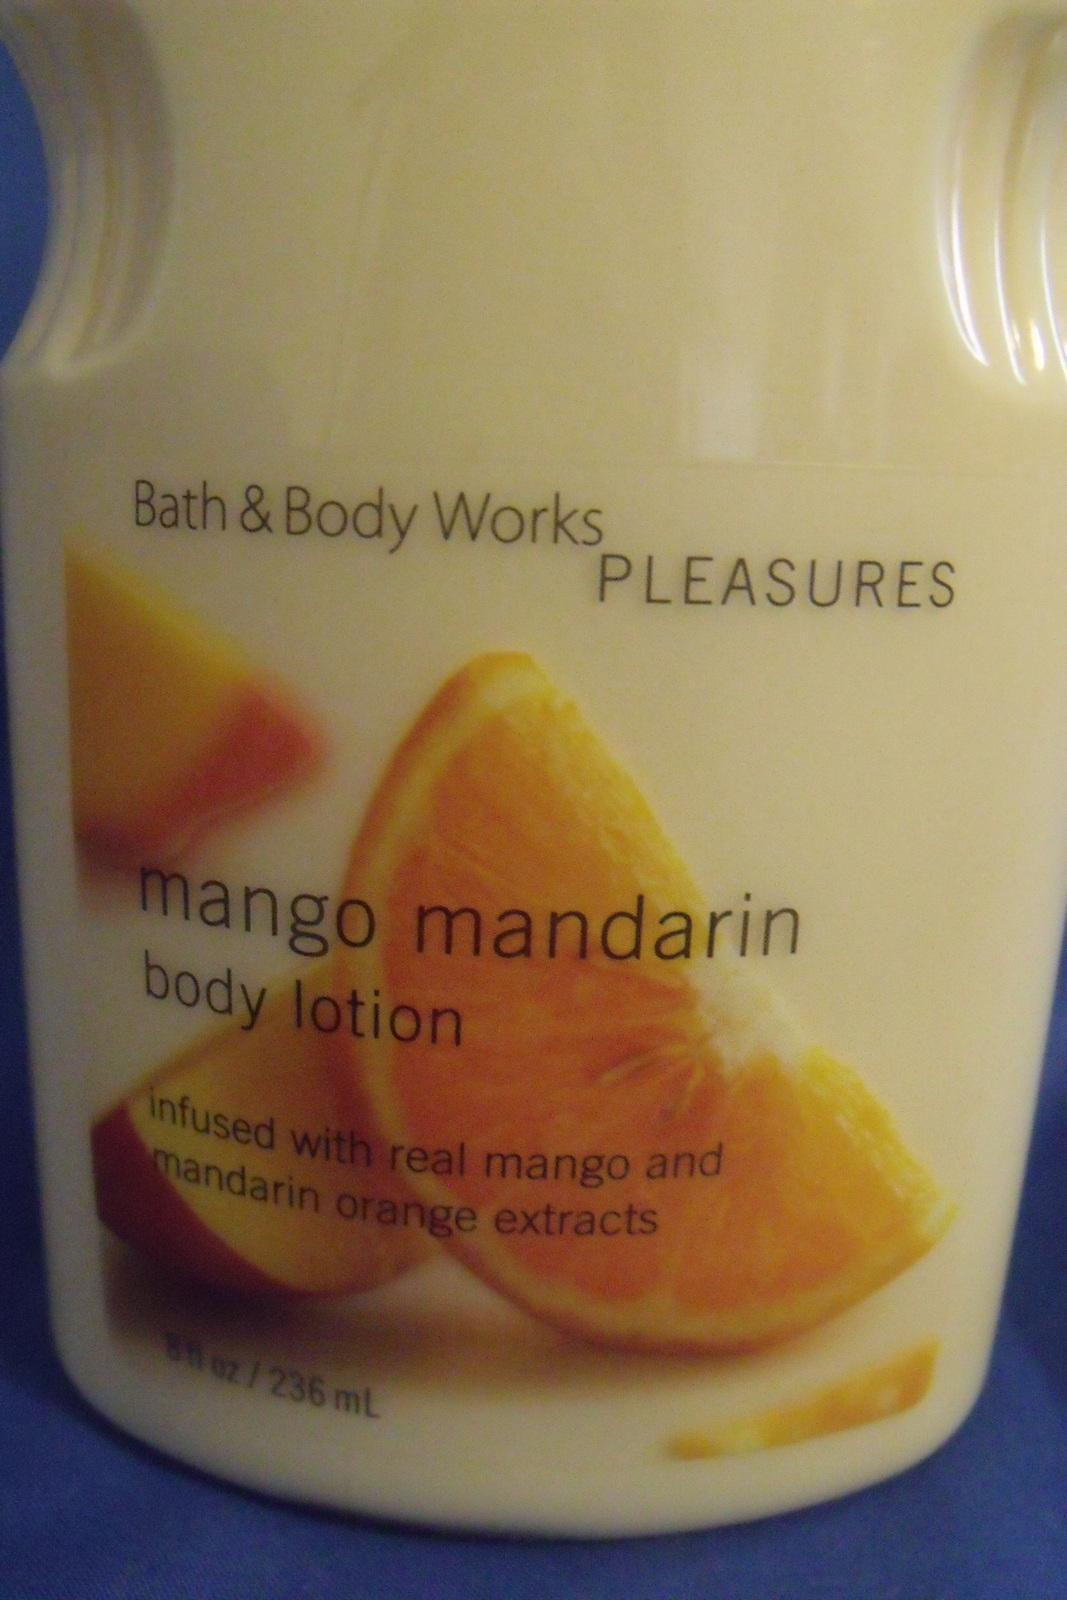 Bath and Body Works New Mango Mandarin Body Lotion 8 oz